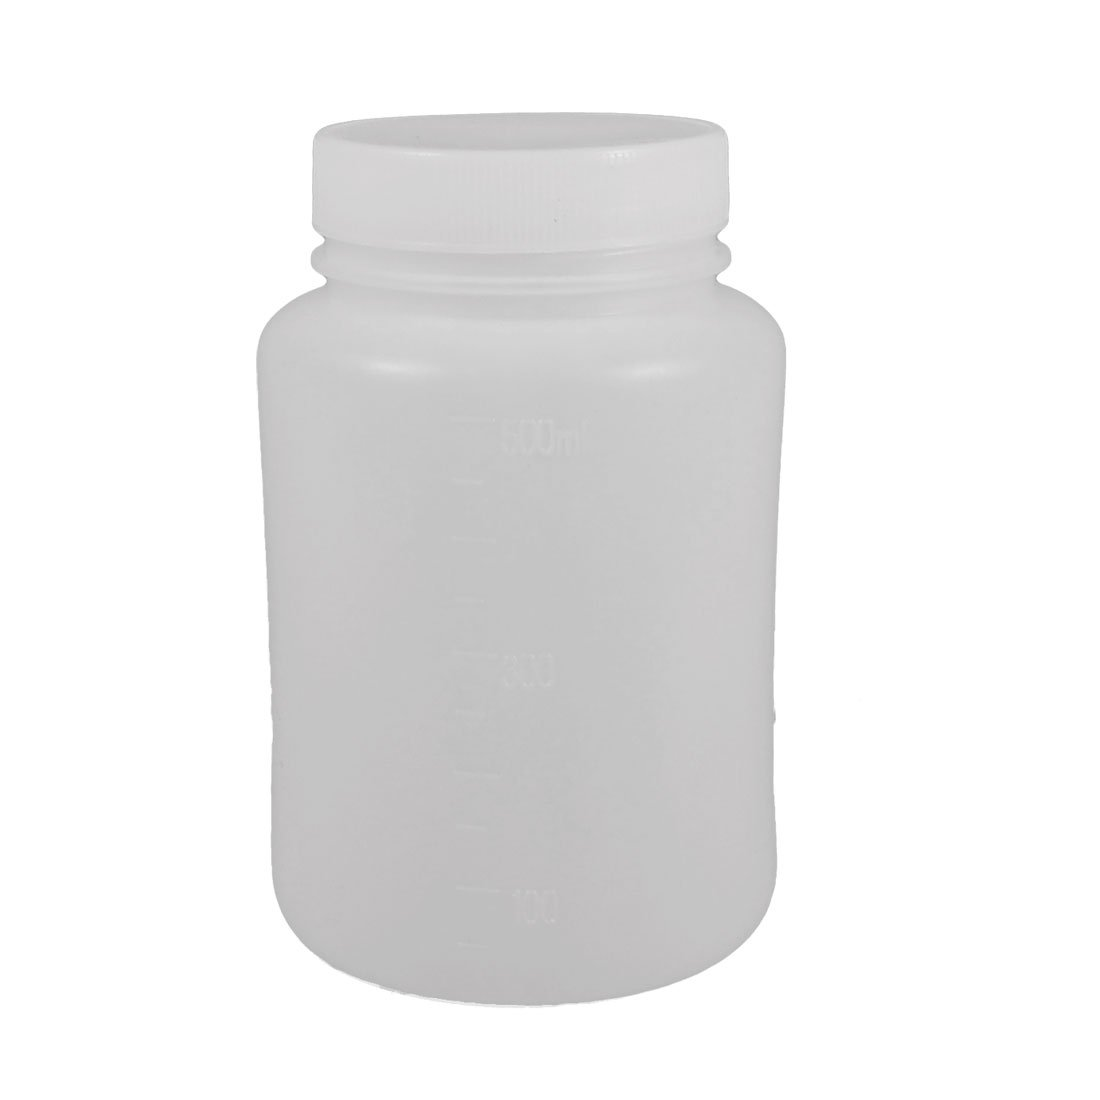 Uxcell a12101800ux0403 Laboratory Chemical Storage Case White Plastic Widemouth Bottle 500mL